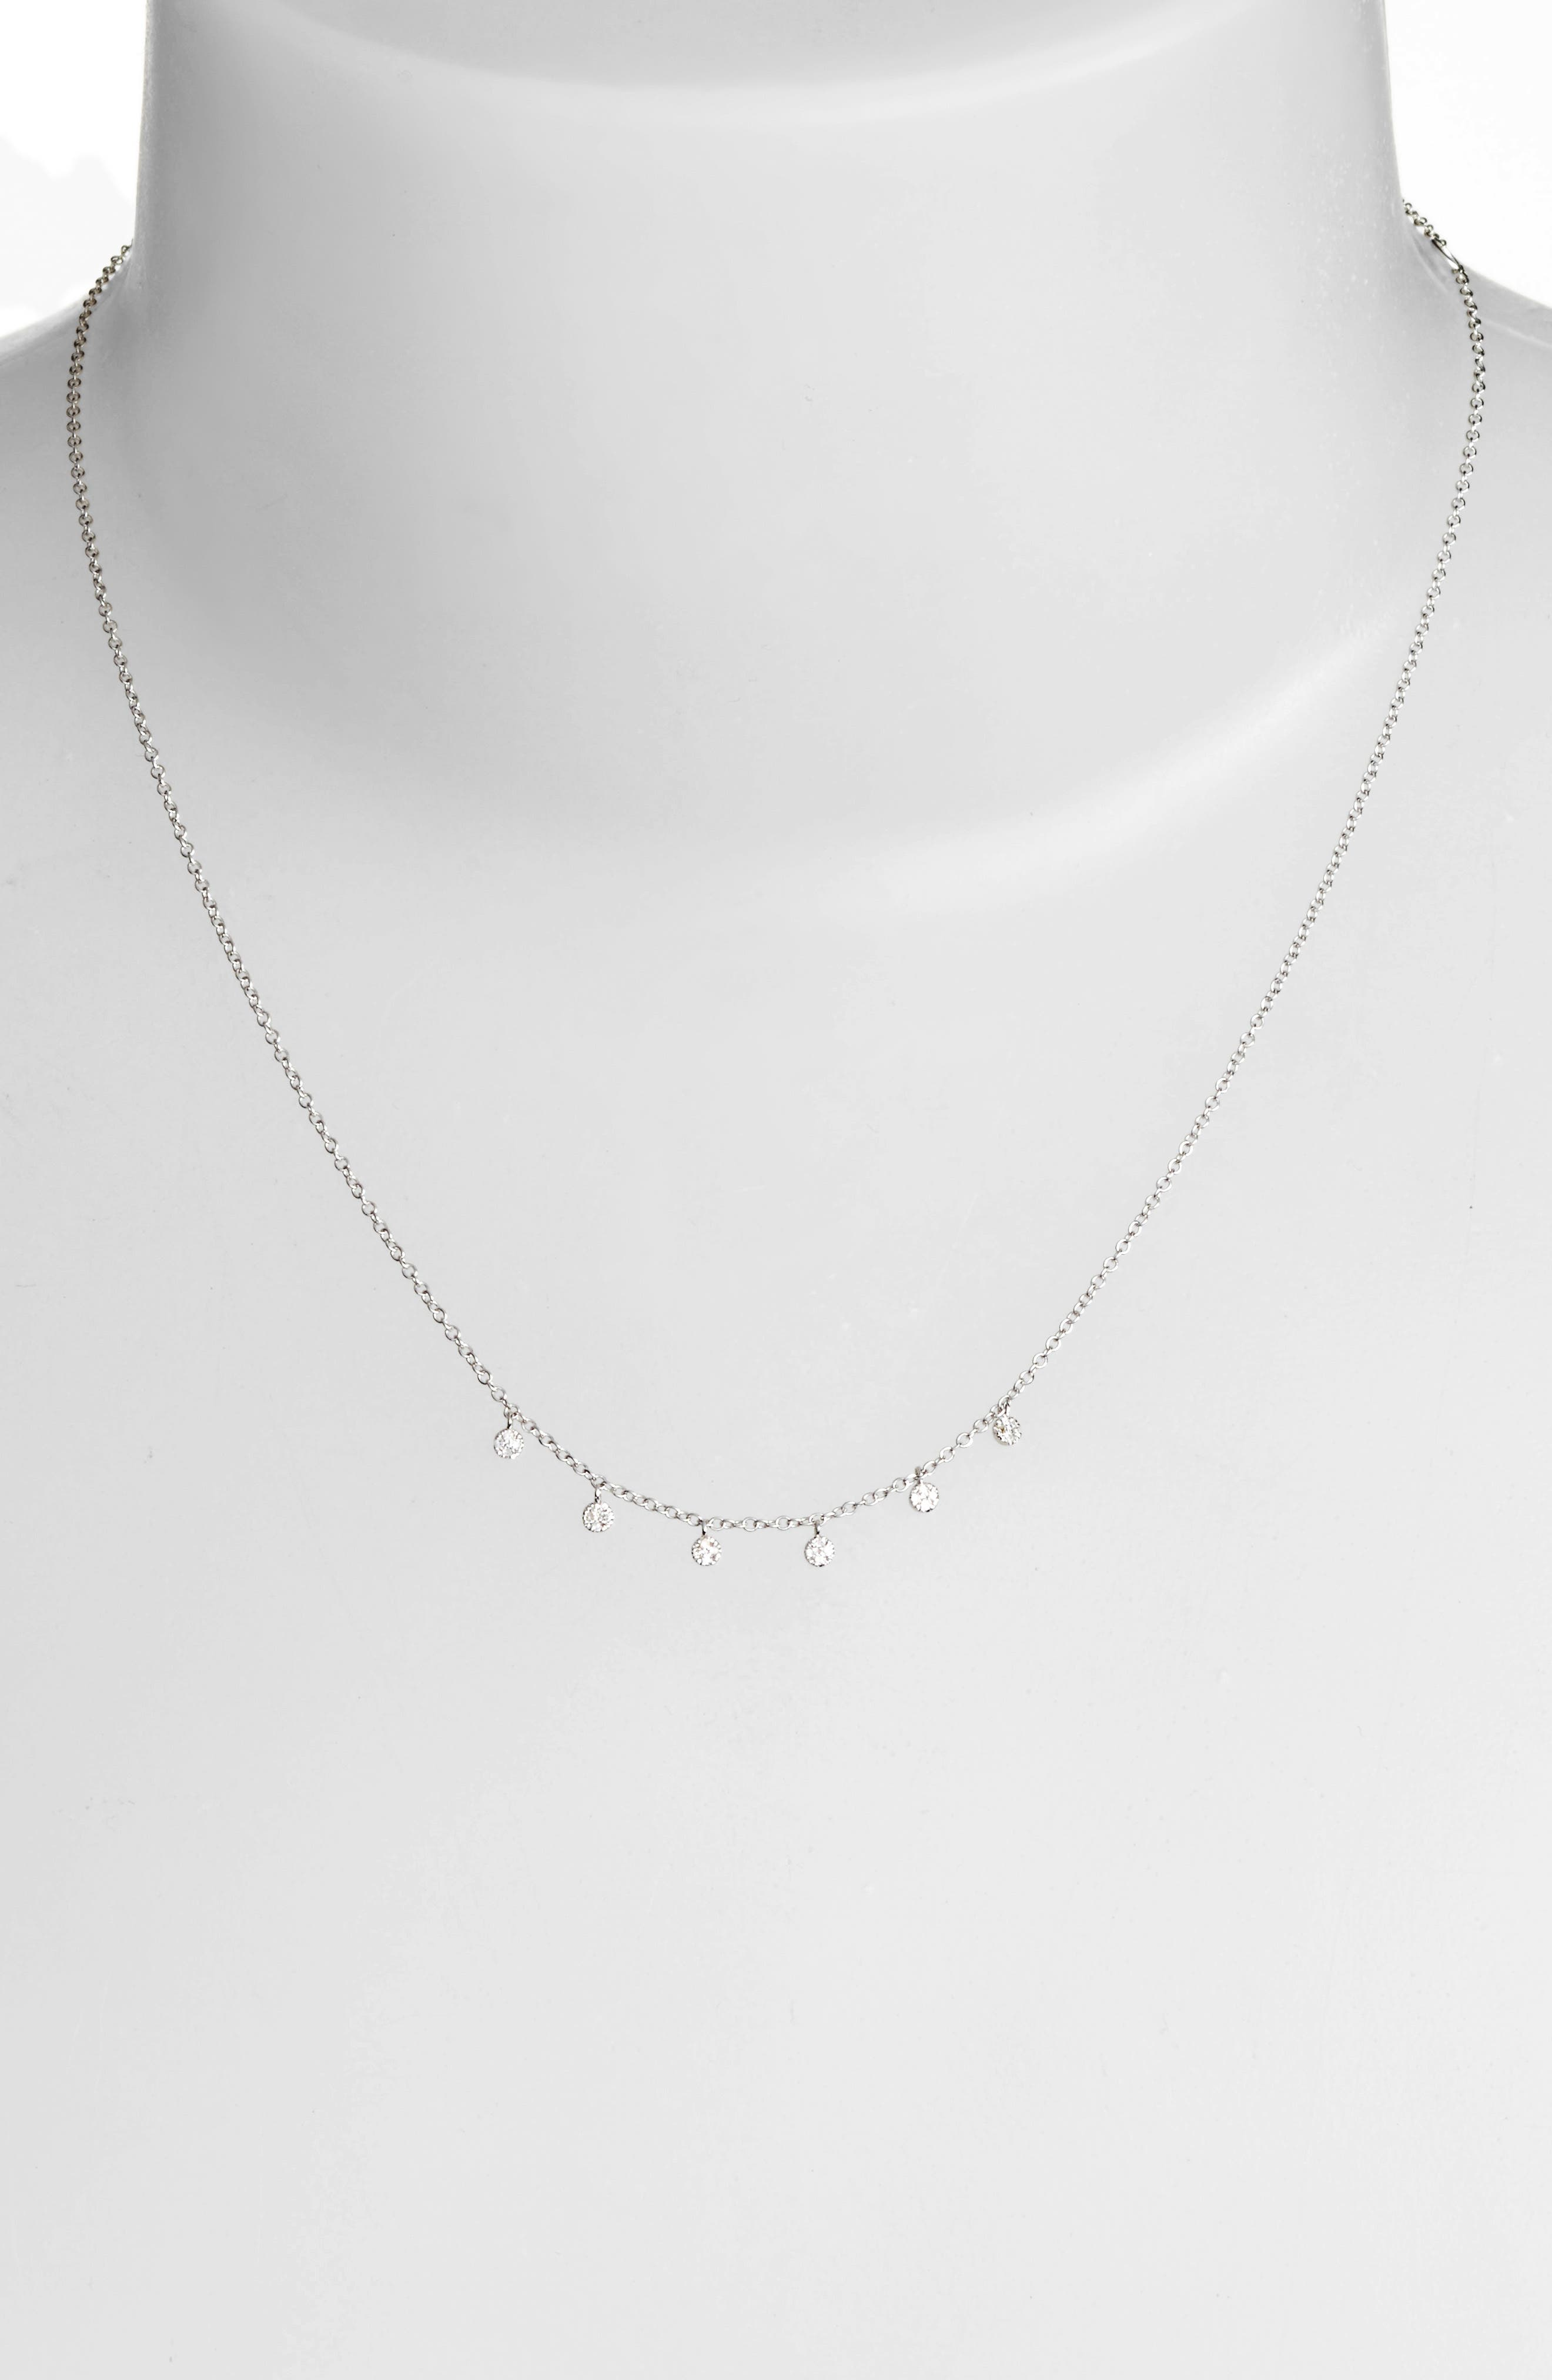 Meria T Diamond Disc Collar Necklace